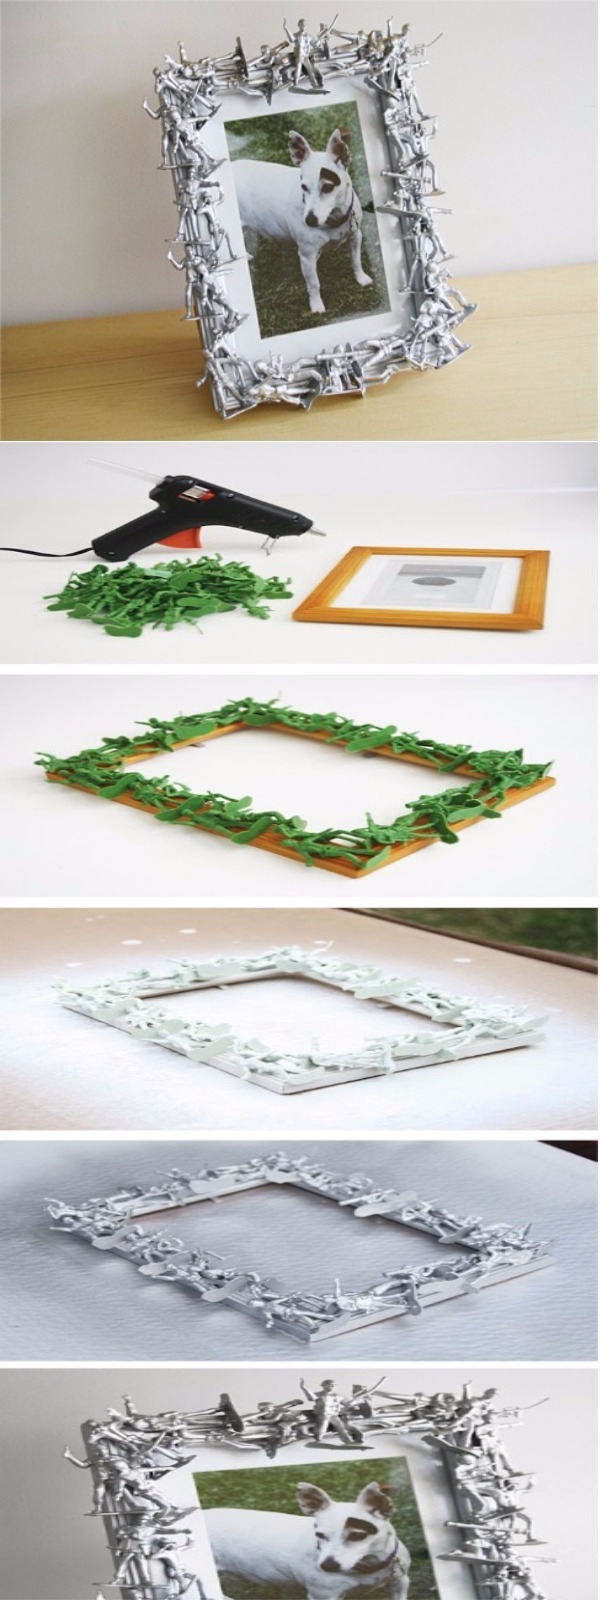 frame Upcycling Projects To Make Your Home Gorgeous